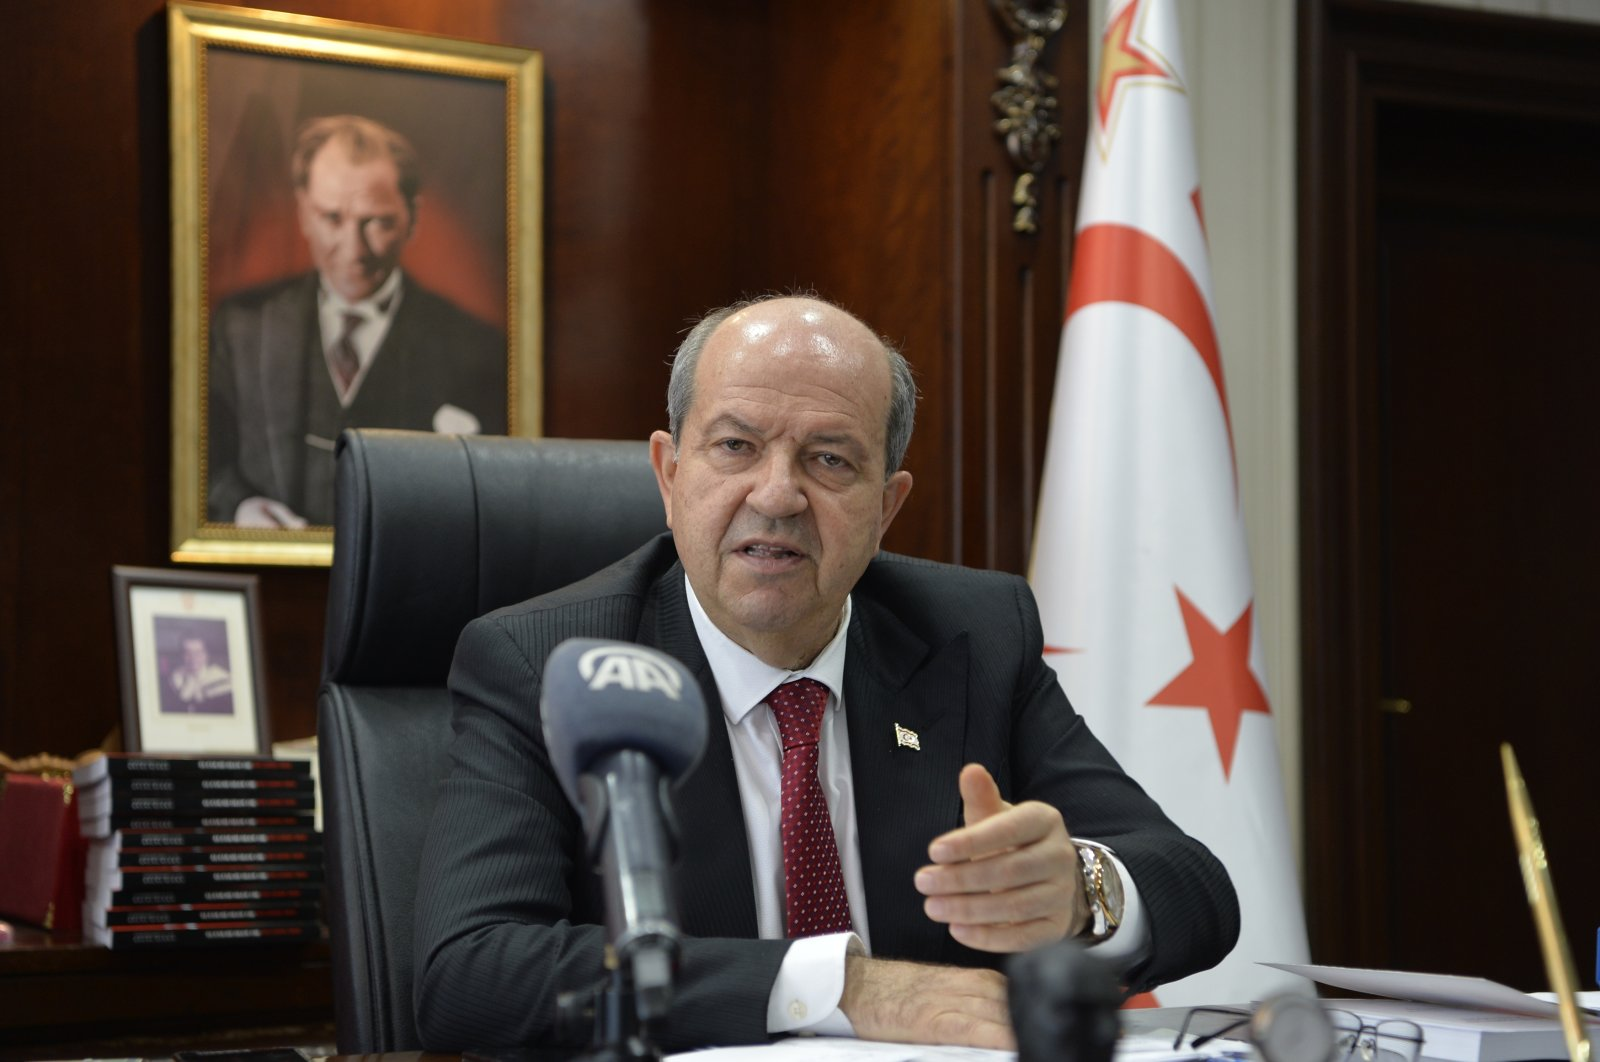 Turkish Republic of Northern Cyprus (TRNC) President Ersin Tatar speaks during an interview with Anadolu Agency, in Nicosia, TRNC, April 25, 2021. (AA)